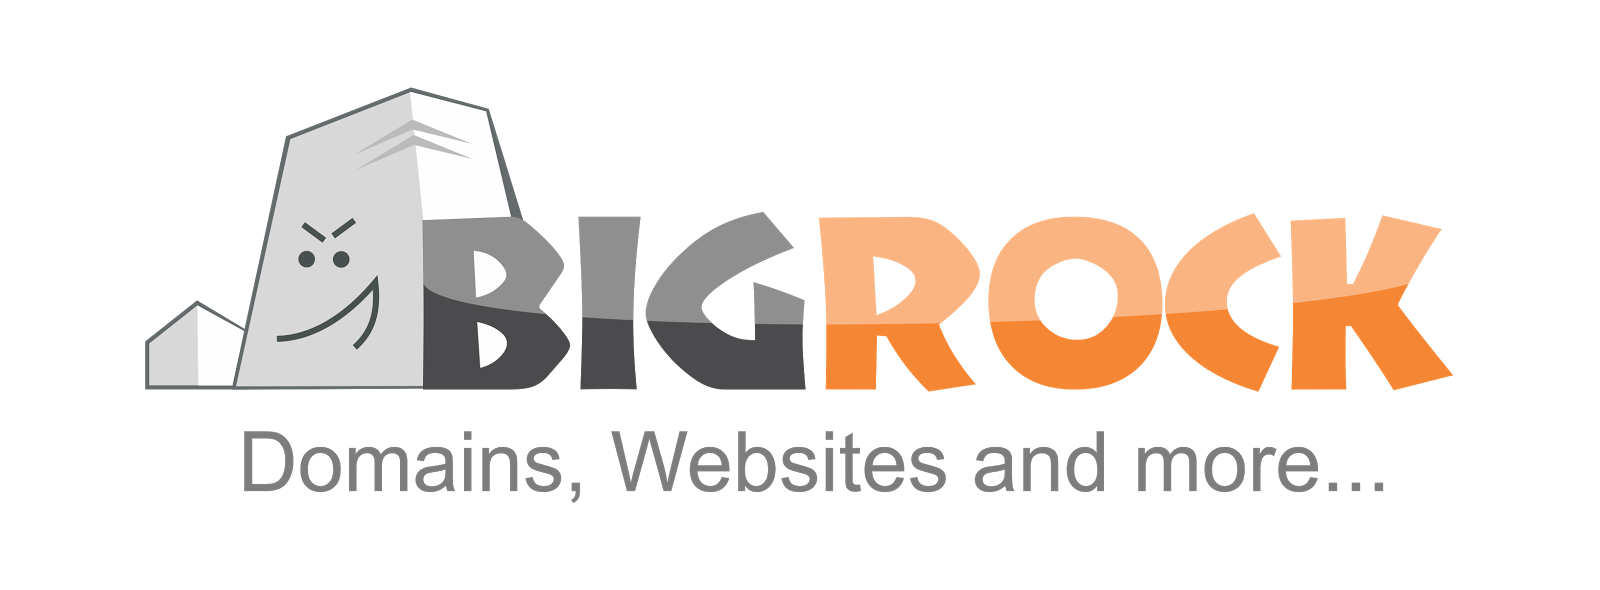 BigRock.in support Phone number